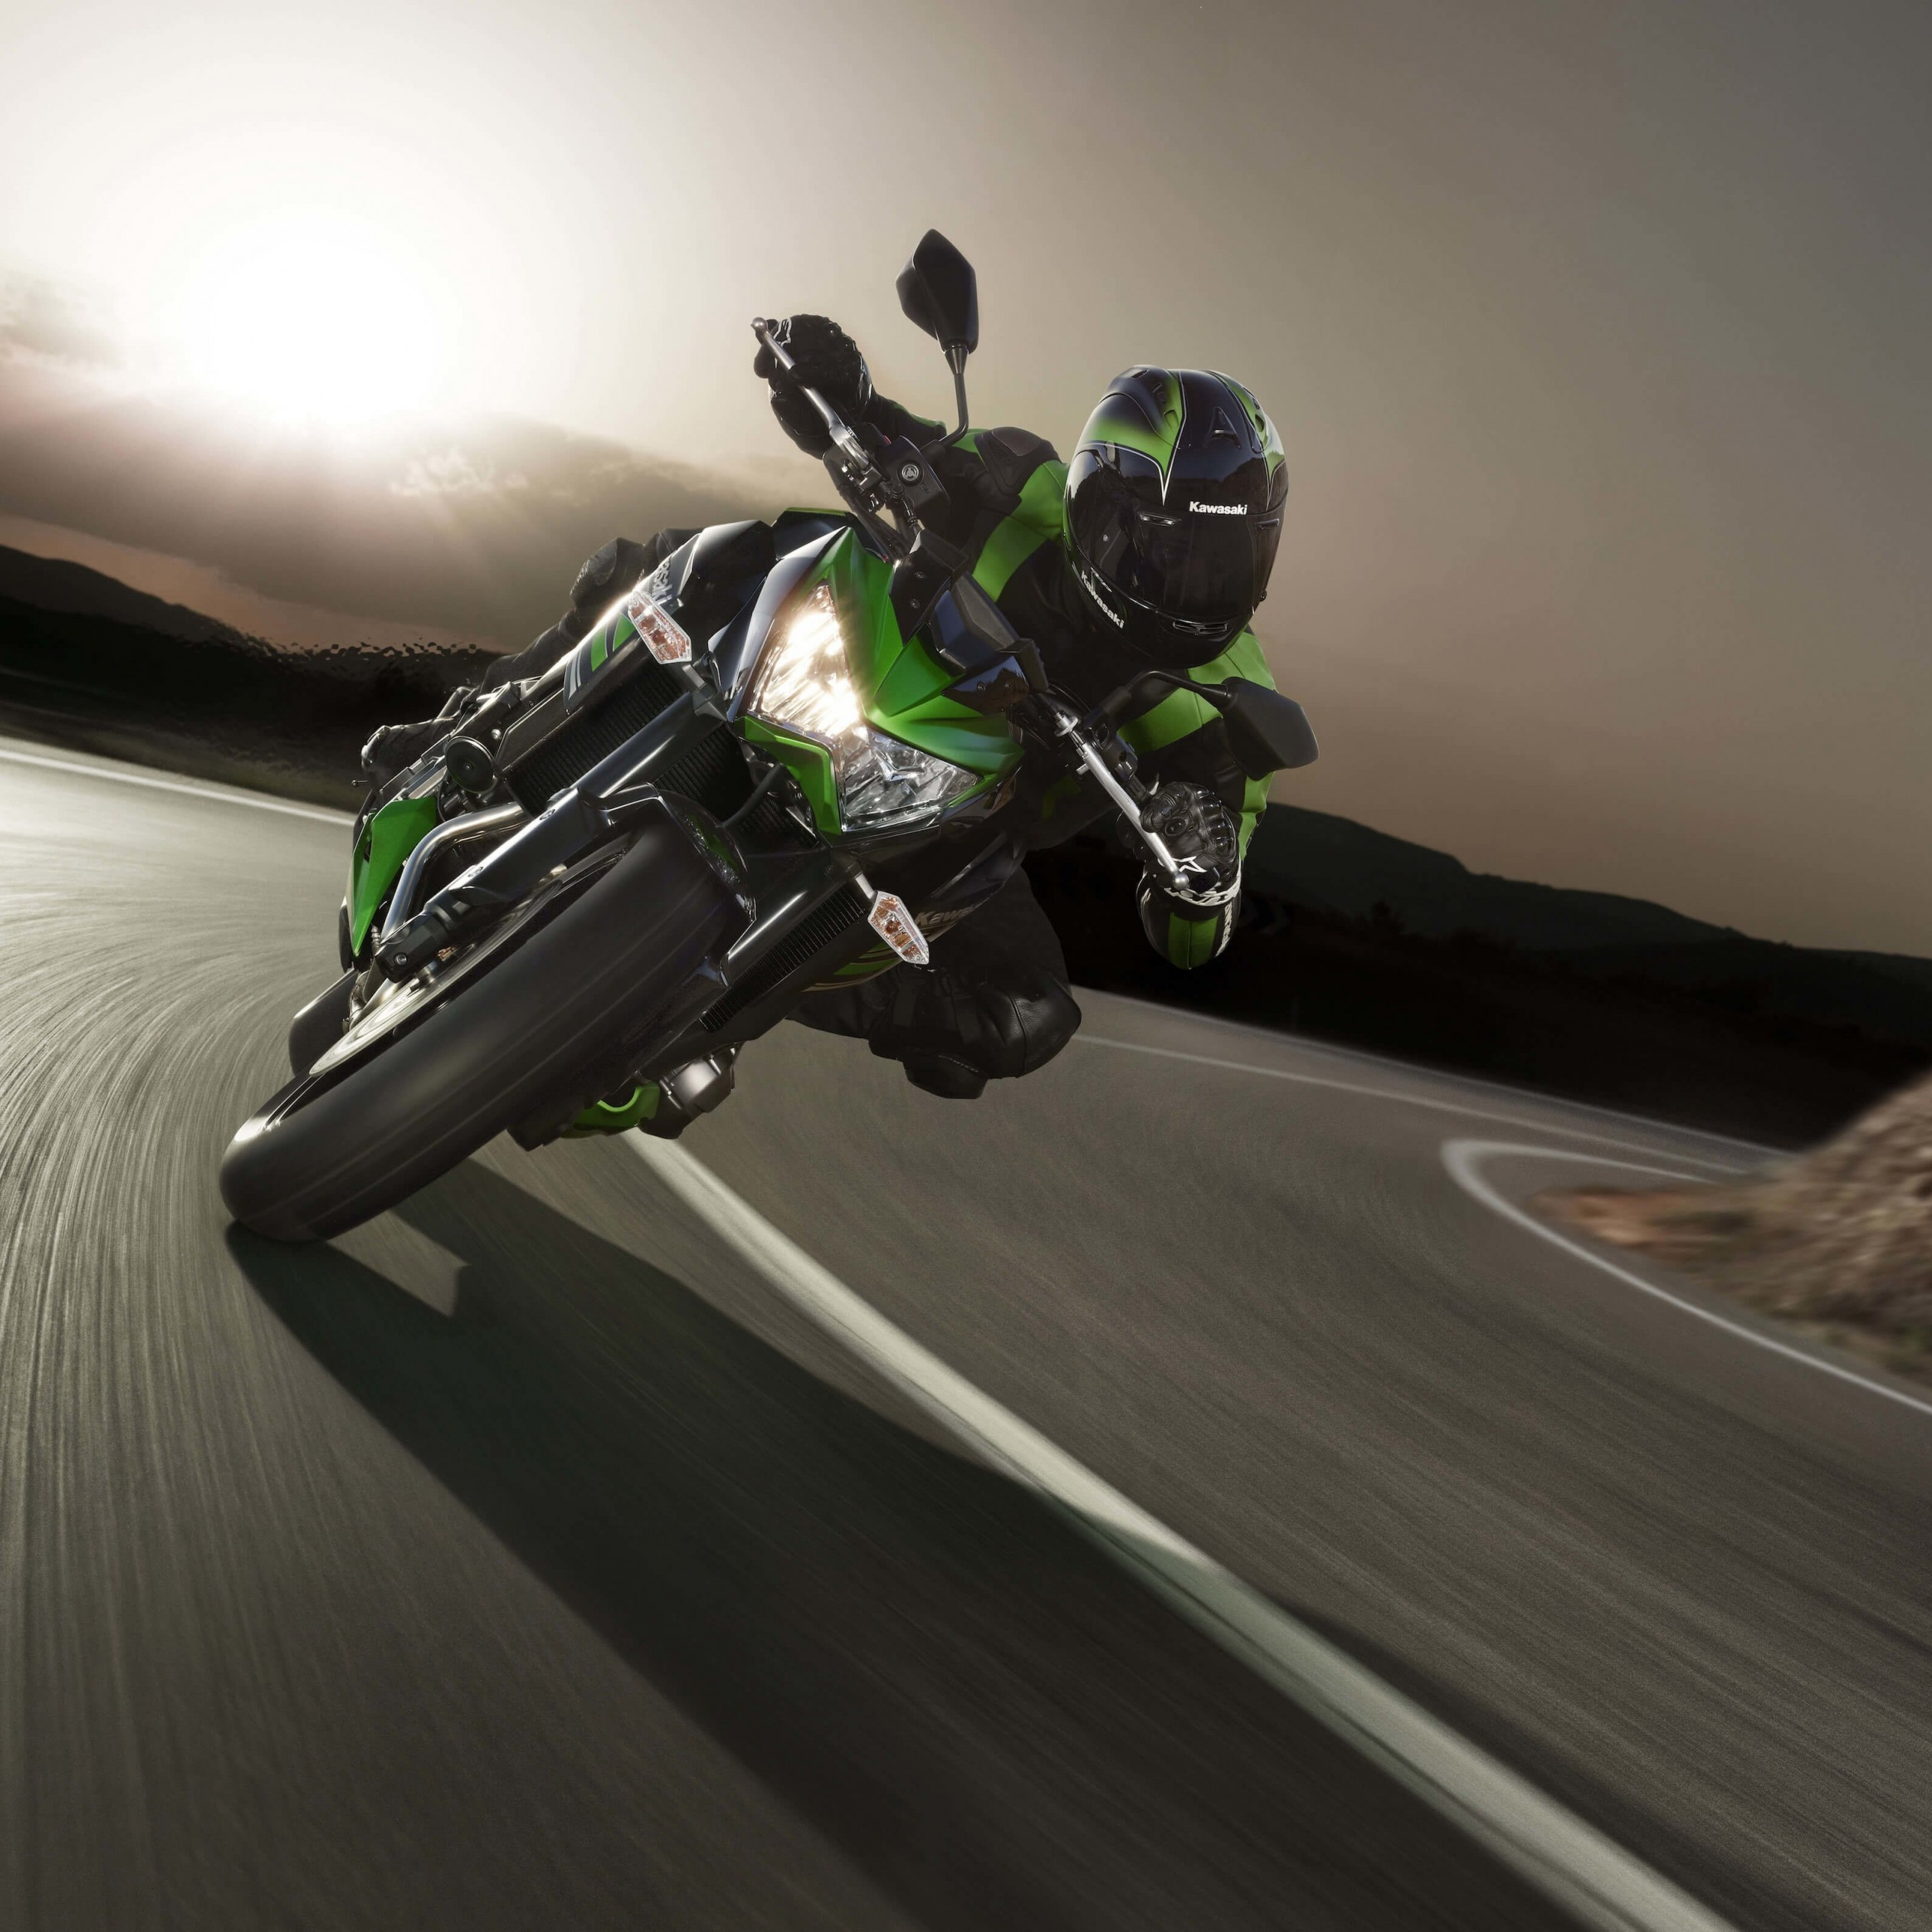 Kawasaki Ninja ZX-10R Wallpaper for Apple iPad 3